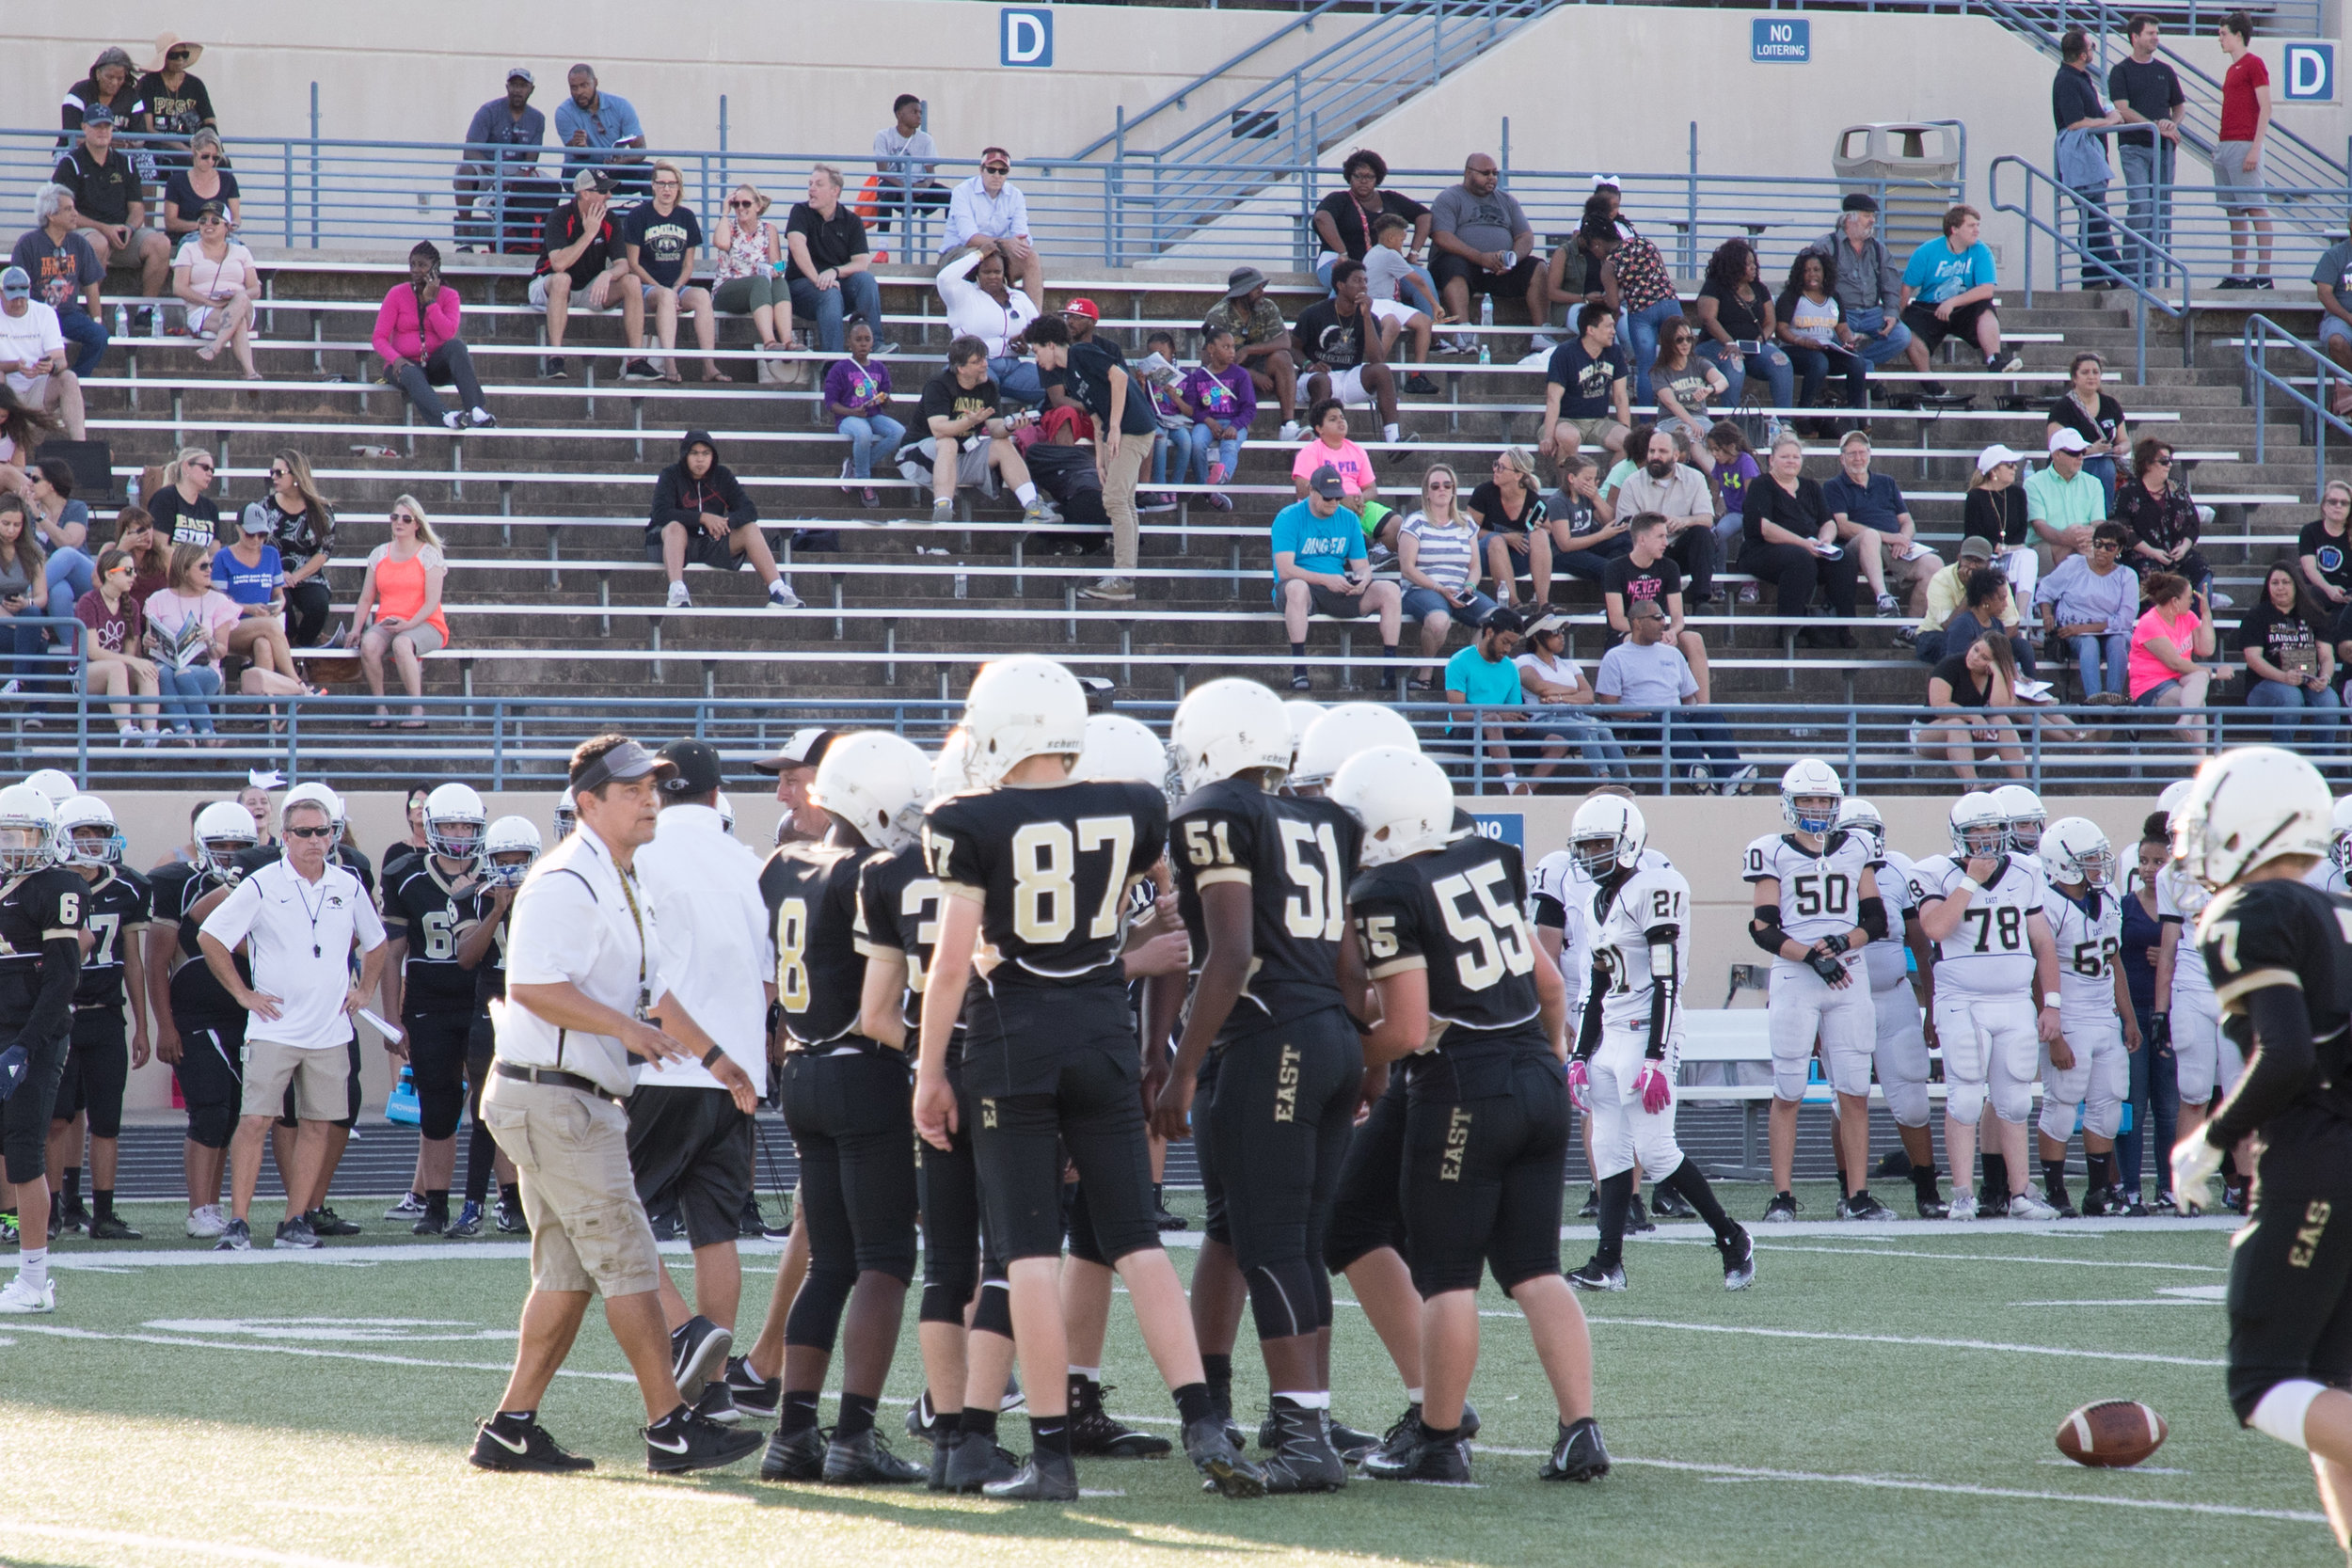 2-Coach Martinez huddles the players before a play.jpg